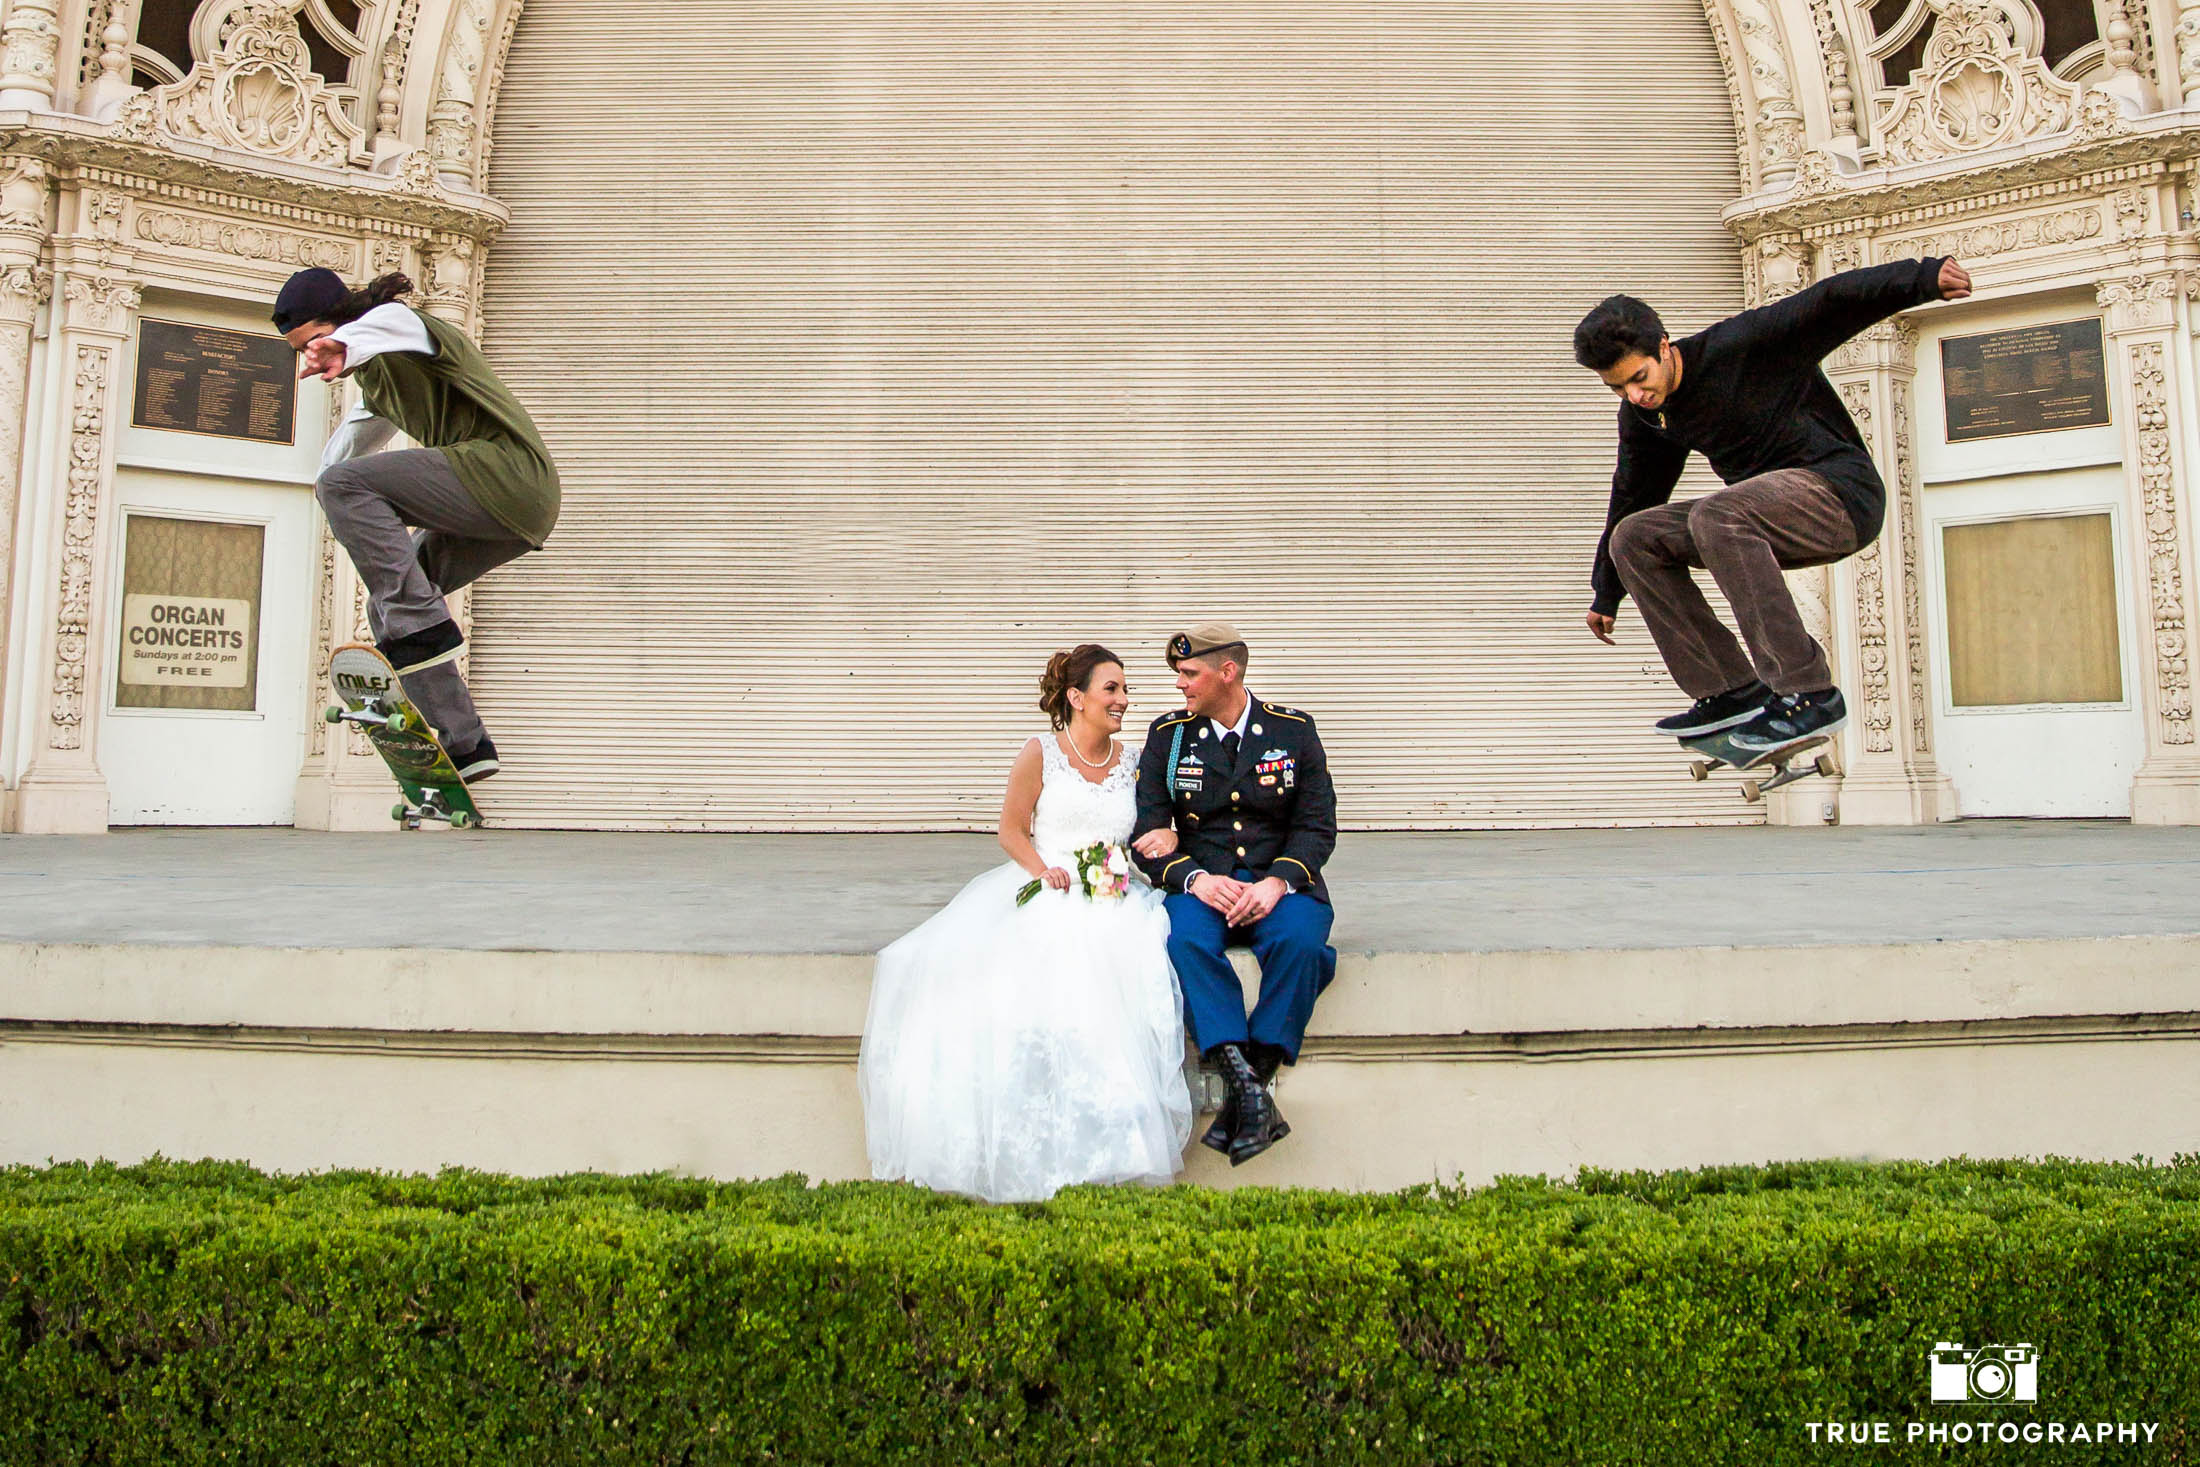 Bride and Groom sit on ledge as skateboards do tricks around them